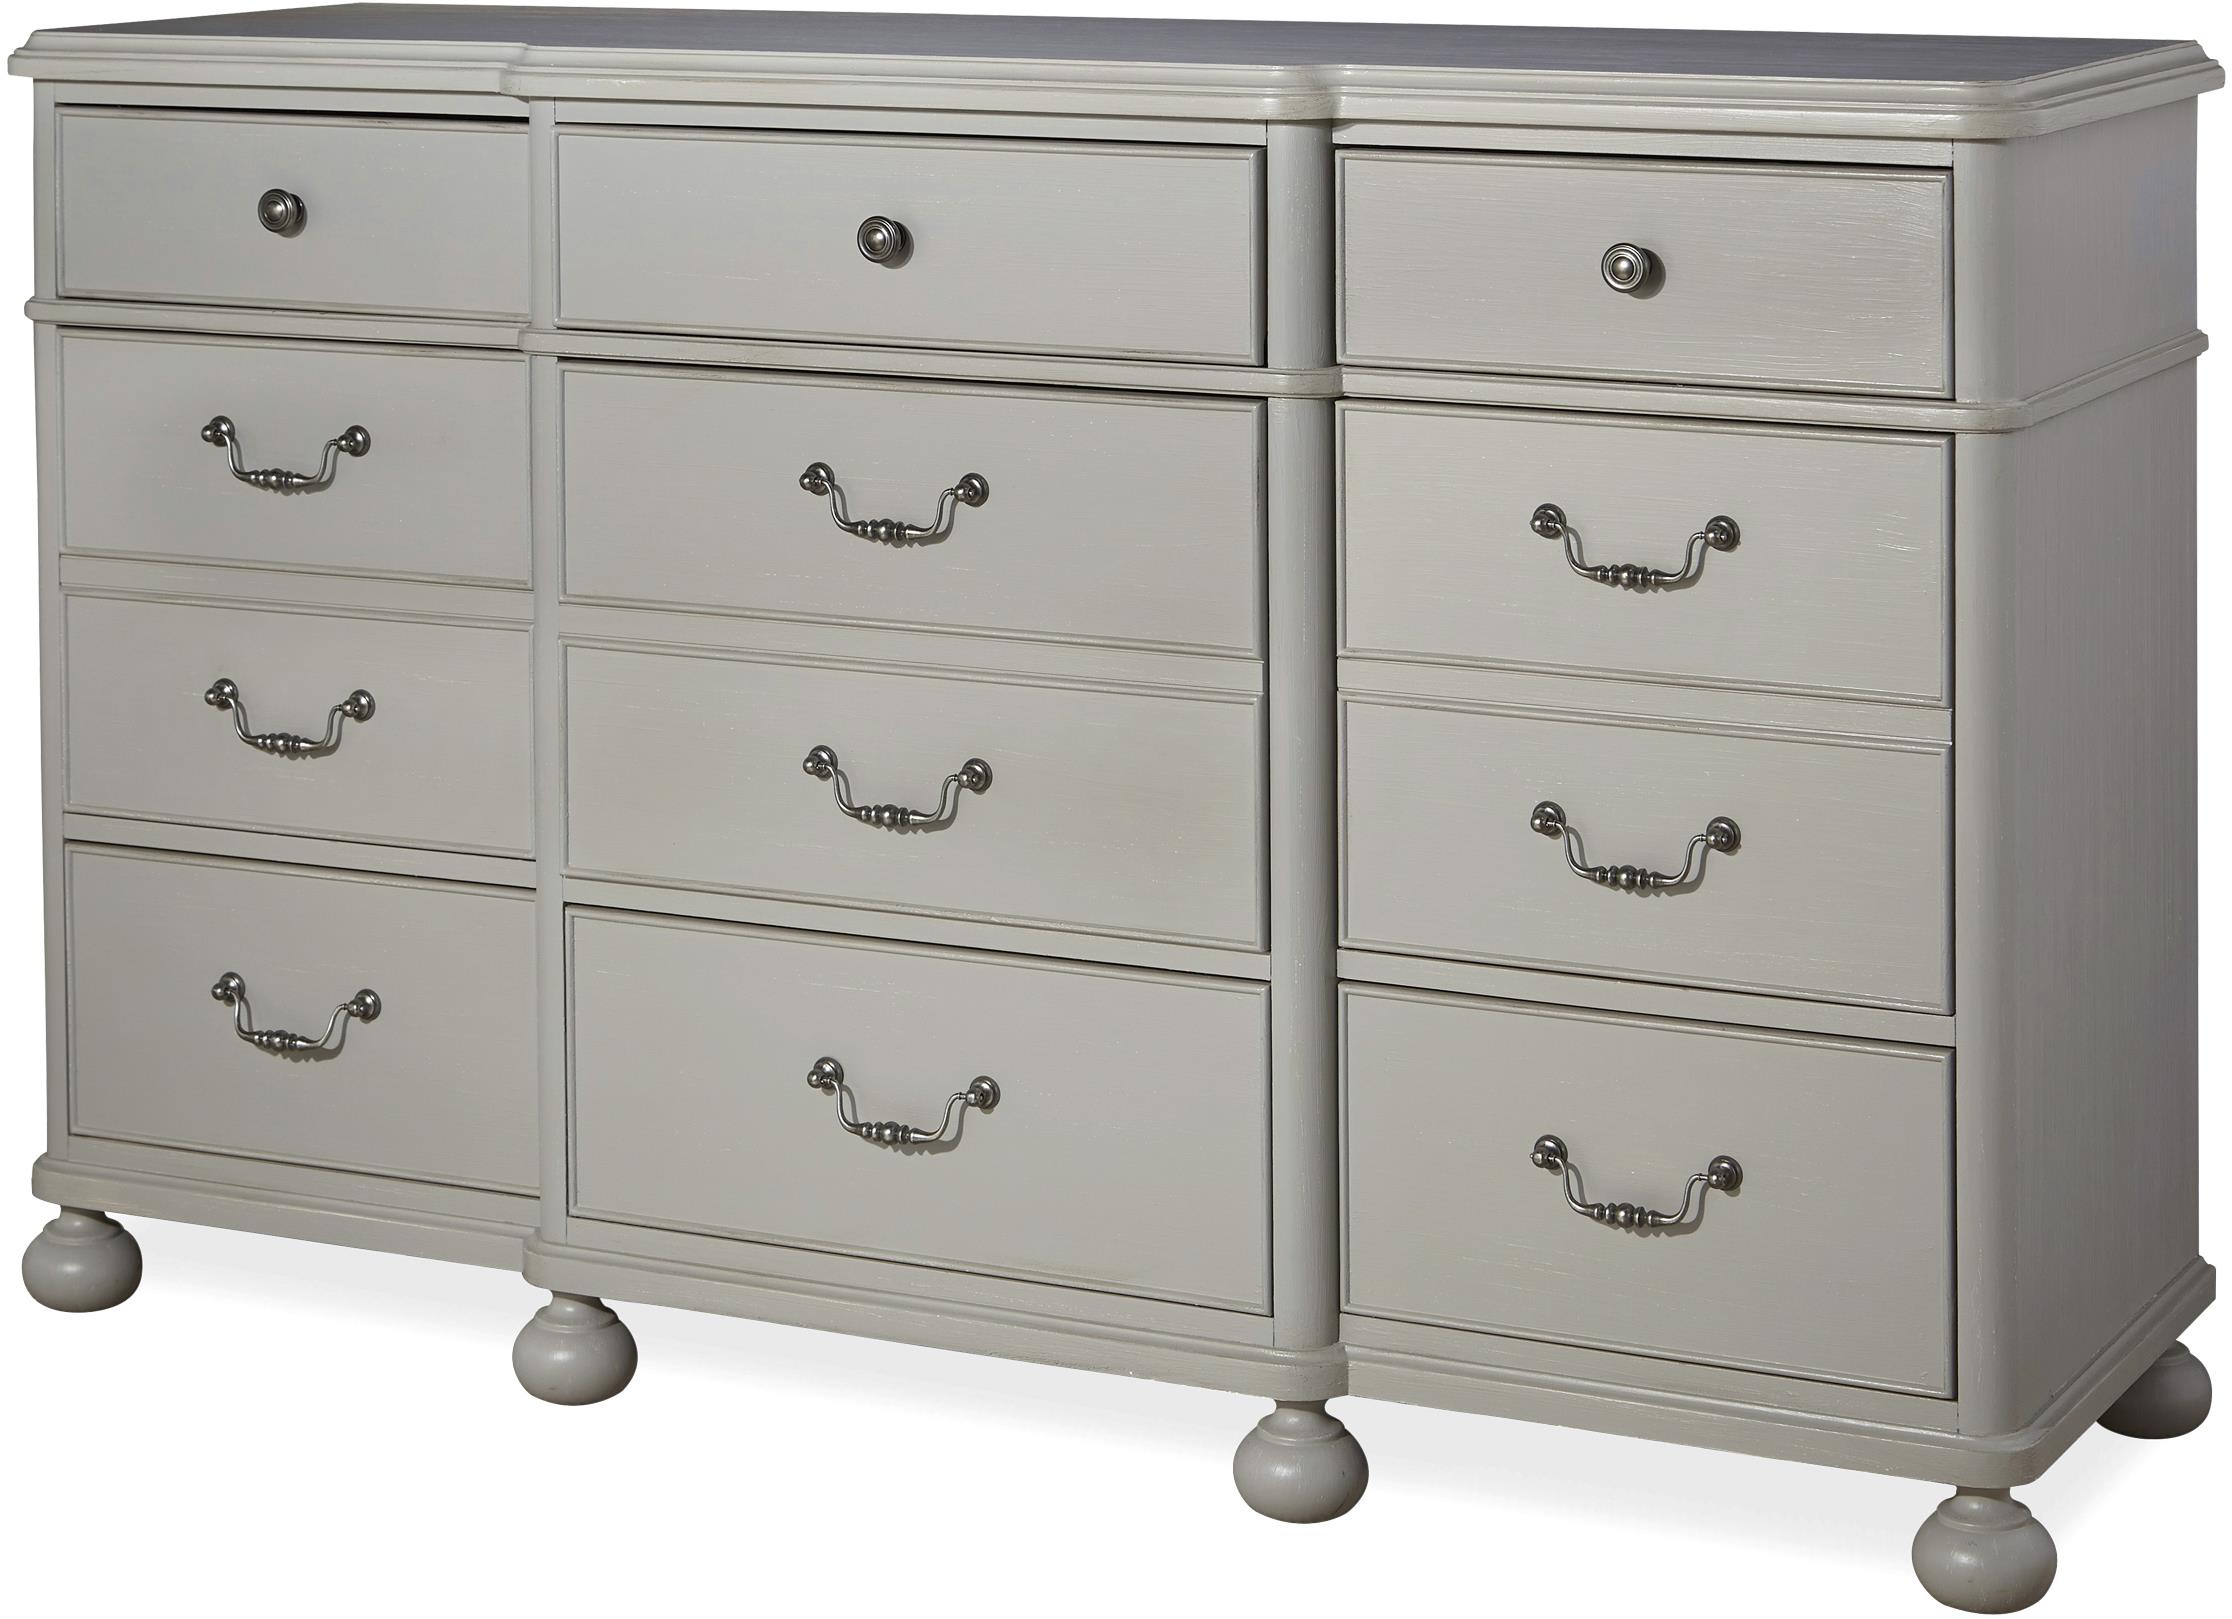 Paula Deen by Universal Dogwood Dresser - Item Number: 599040